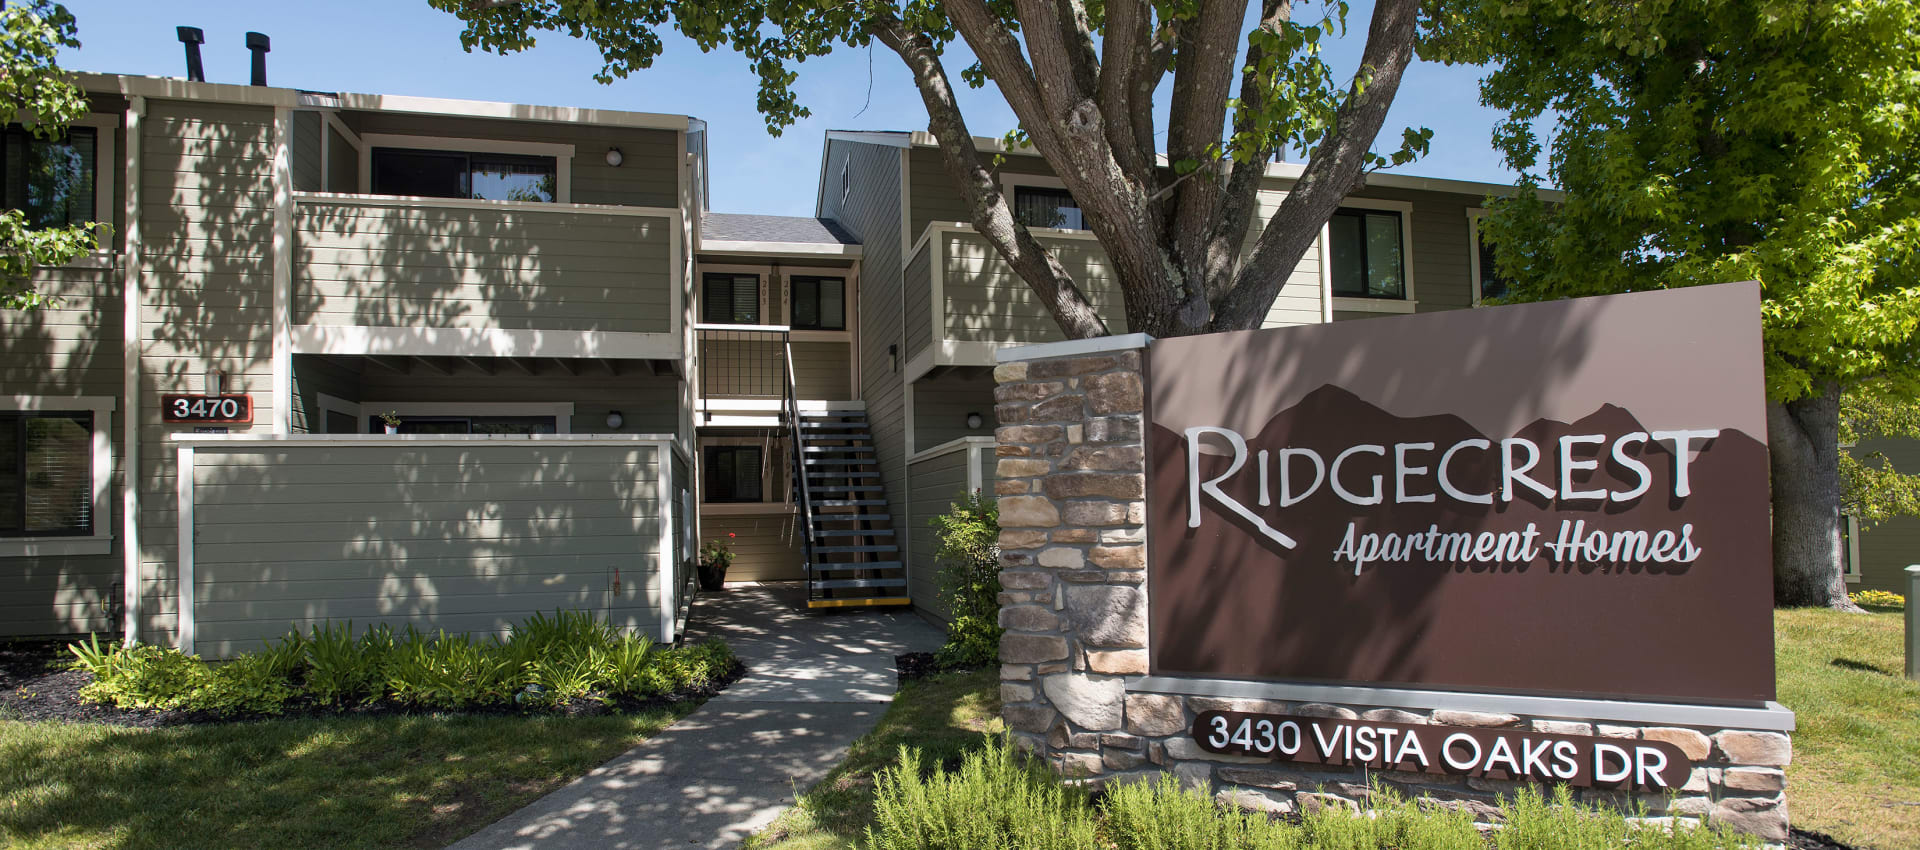 Ridgecrest Apartment Homes signage in Martinez, California